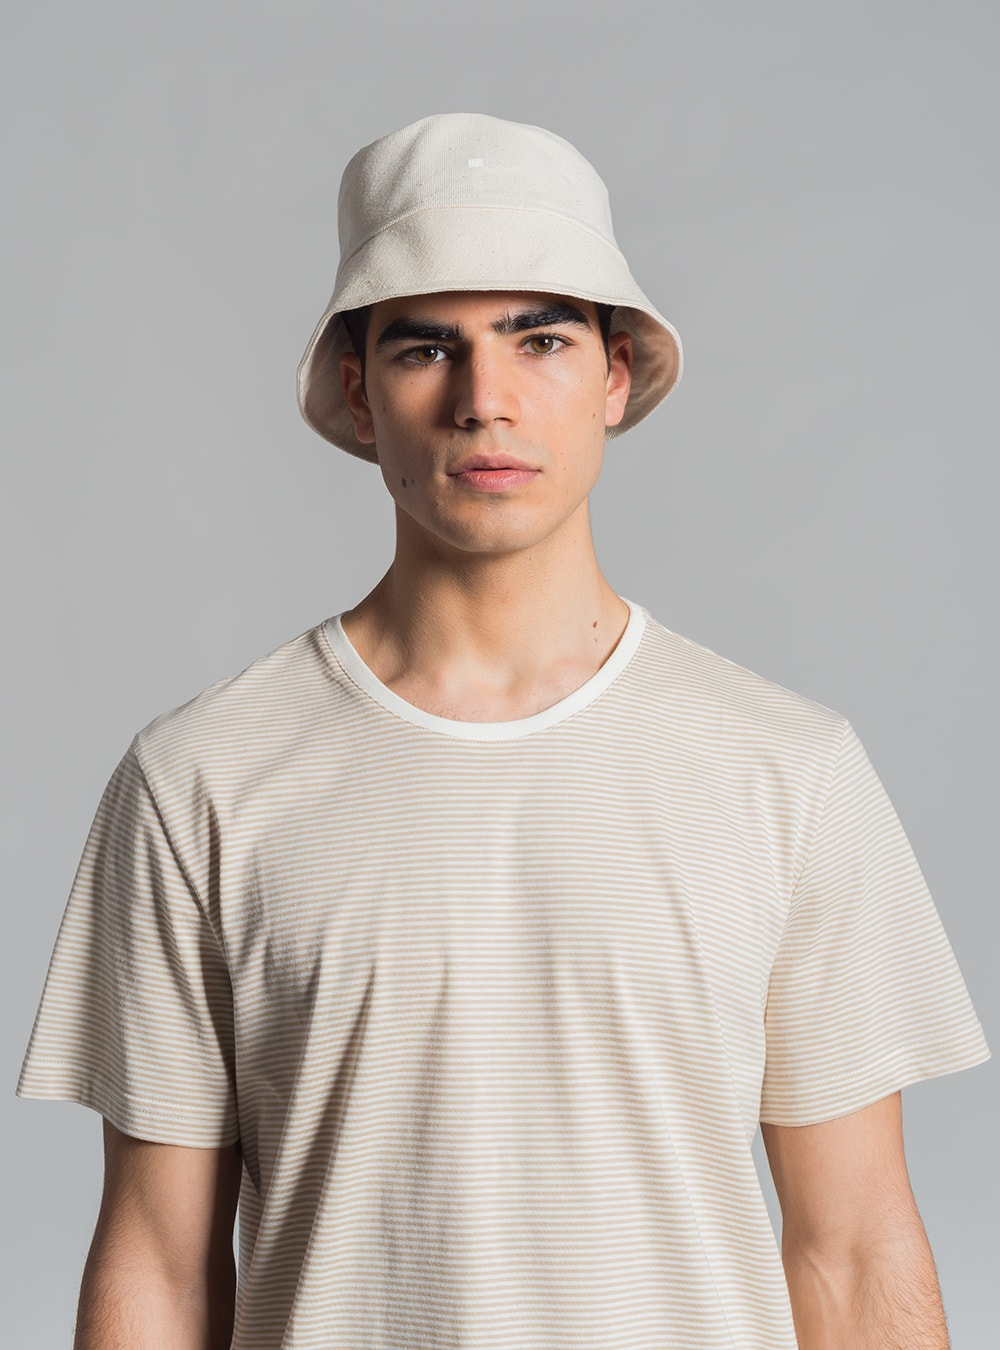 Graphic bucket hat (warm white), made in Portugal by wetheknot